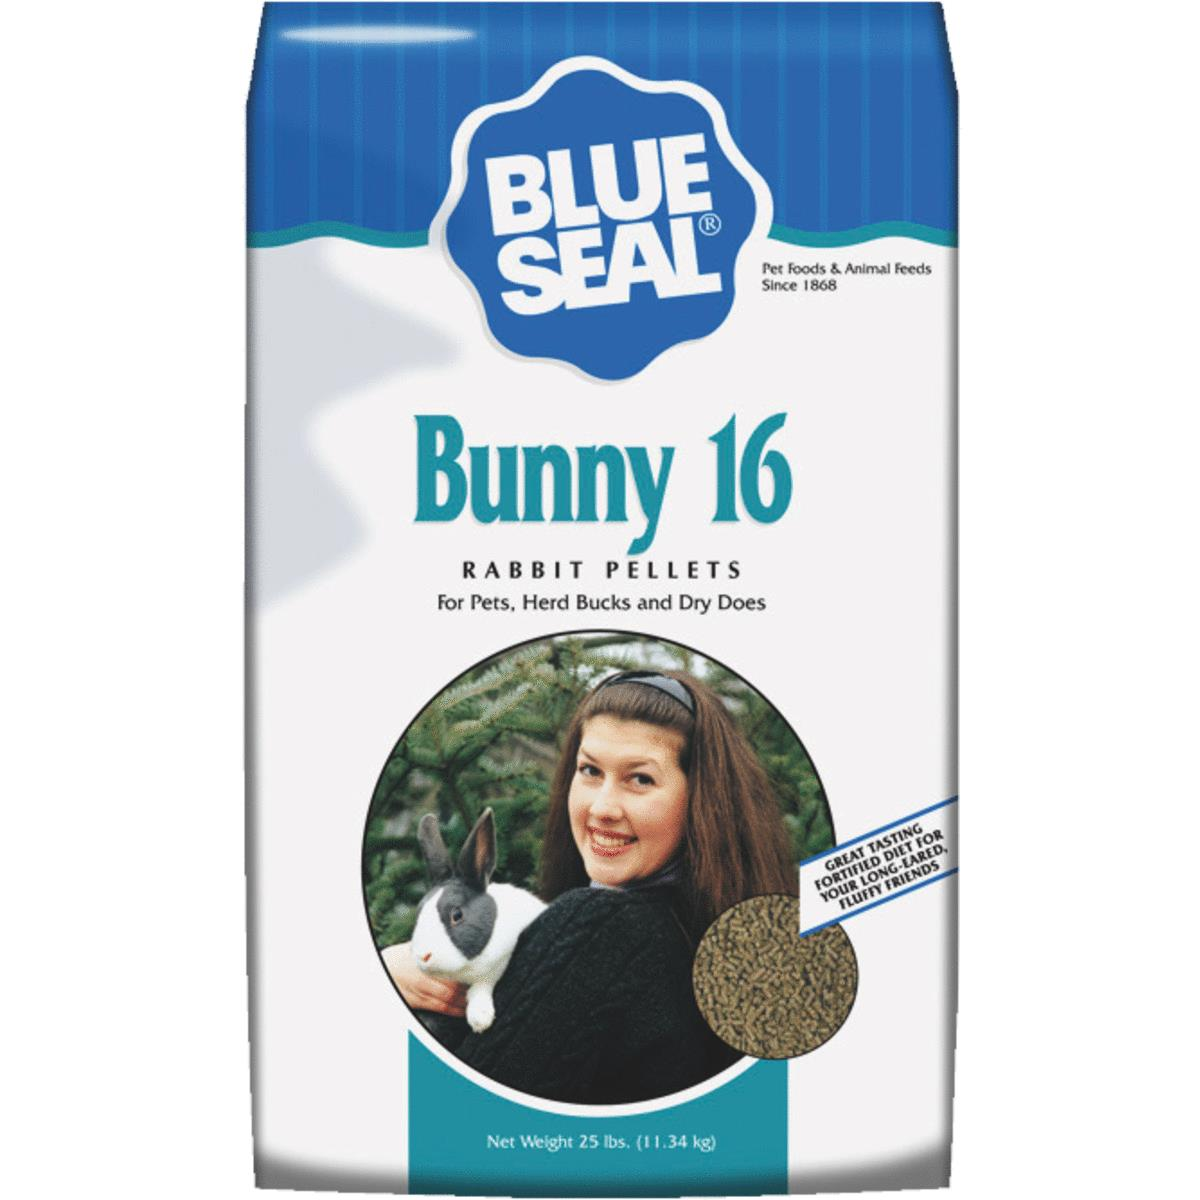 Blue Seal Bunny 16 Rabbit Food by Kent Feeds